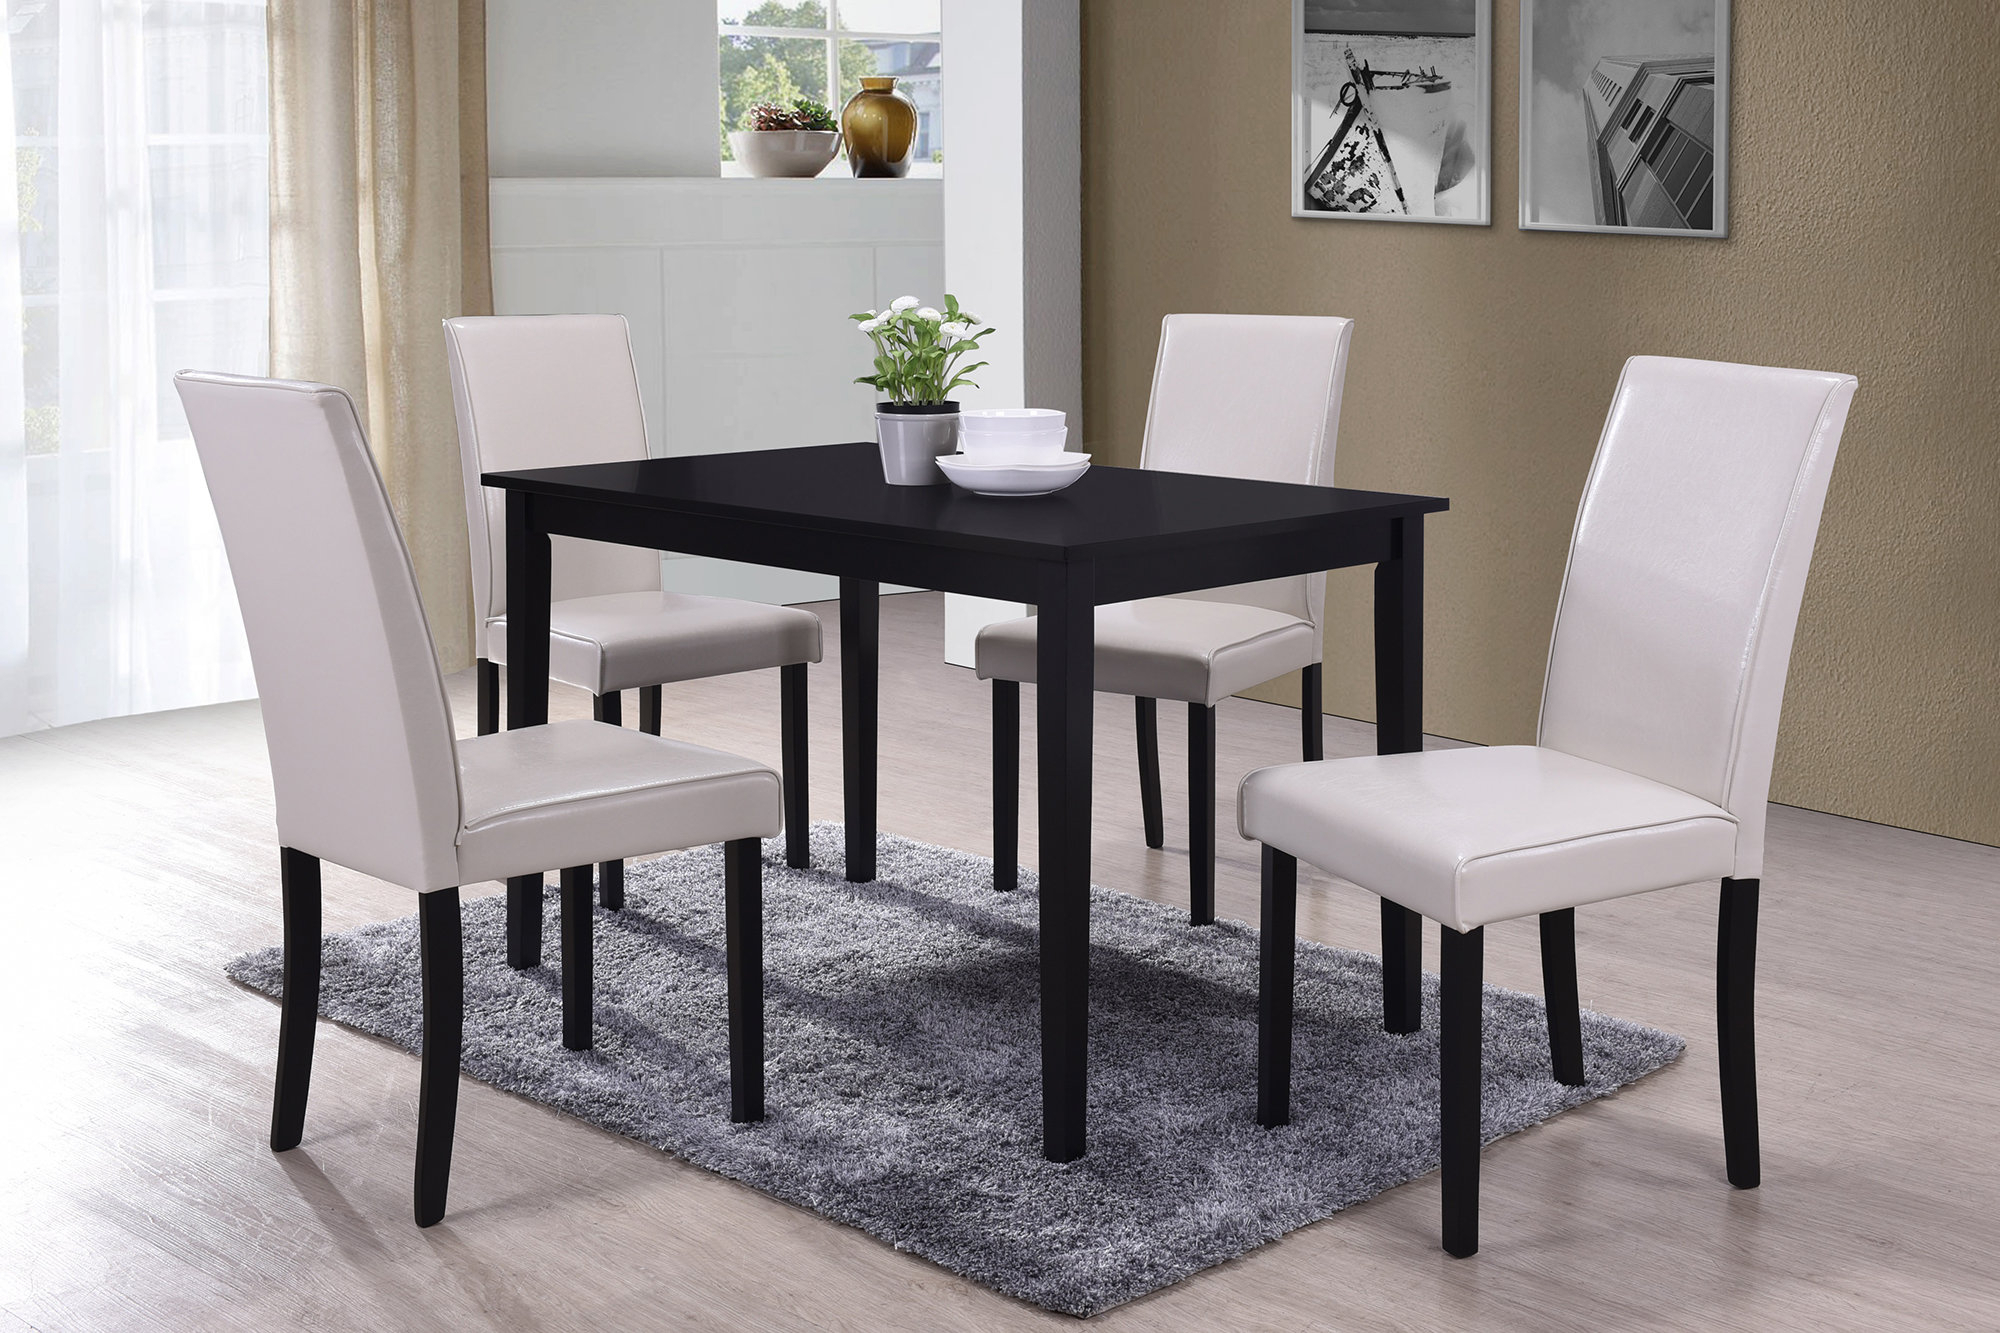 Ebern Designs Macneil 5 Piece Dining Set Pertaining To Latest Travon 5 Piece Dining Sets (Gallery 4 of 20)